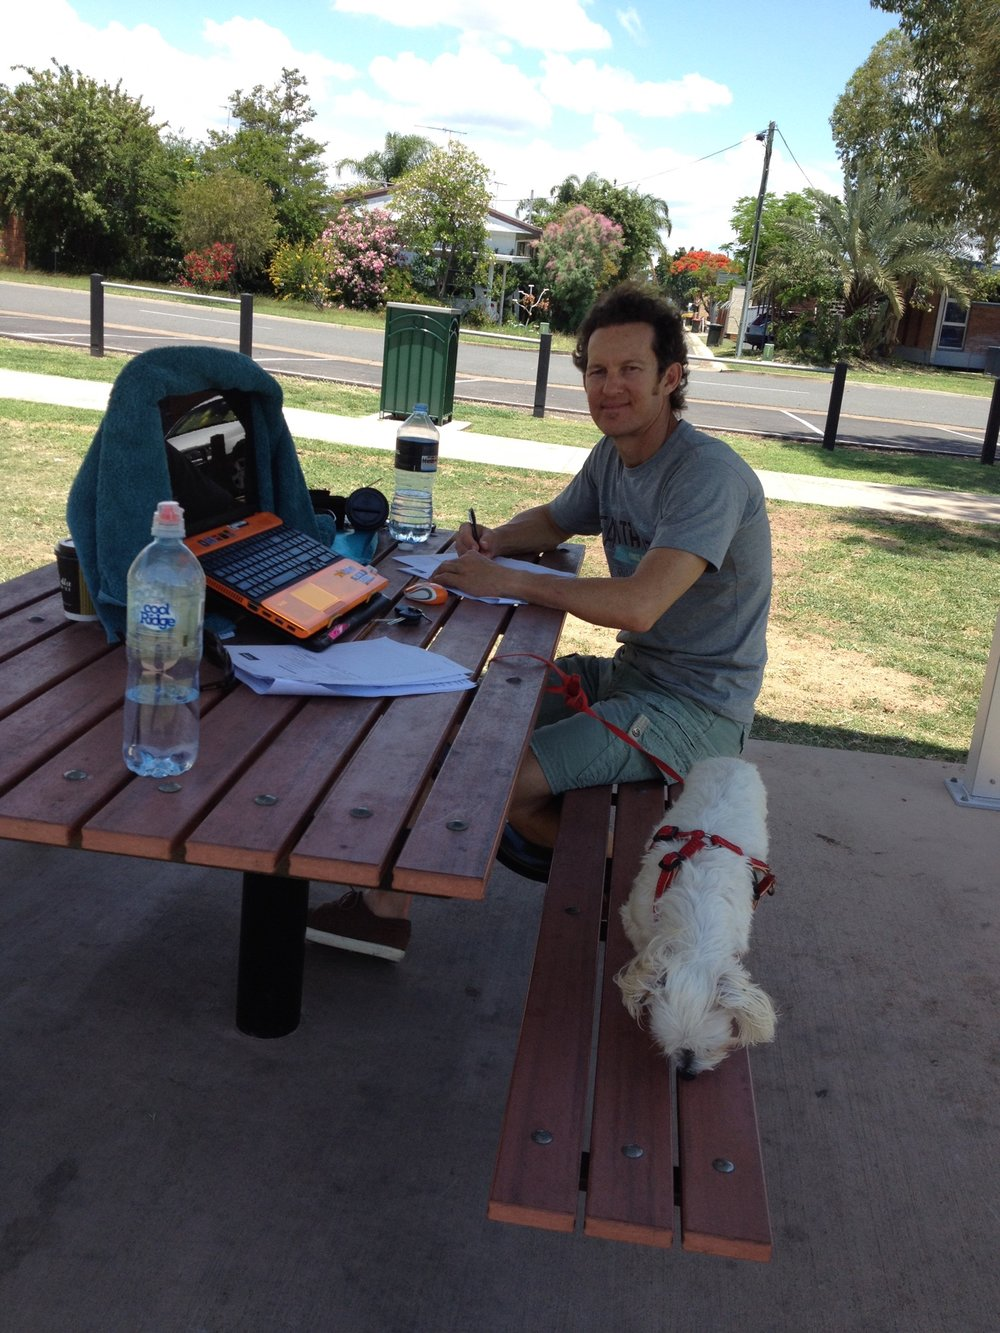 Beryl Training CPR/LVR in a park at Biloela for a student from Monto.